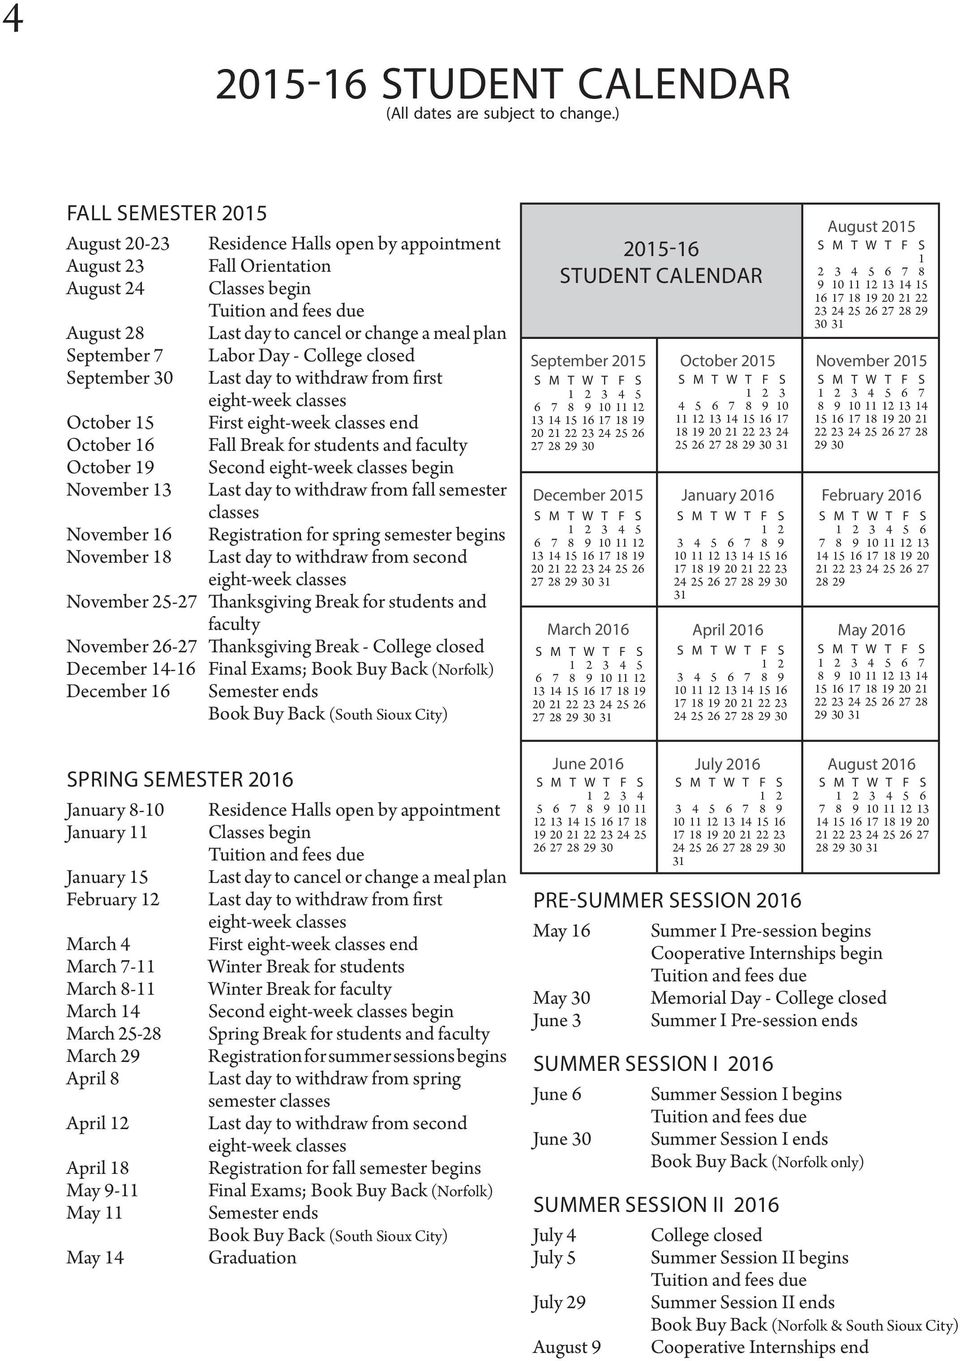 September 7 Labor Day - College closed September 30 Last day to withdraw from first eight-week classes October 15 First eight-week classes end October 16 Fall Break for students and faculty October